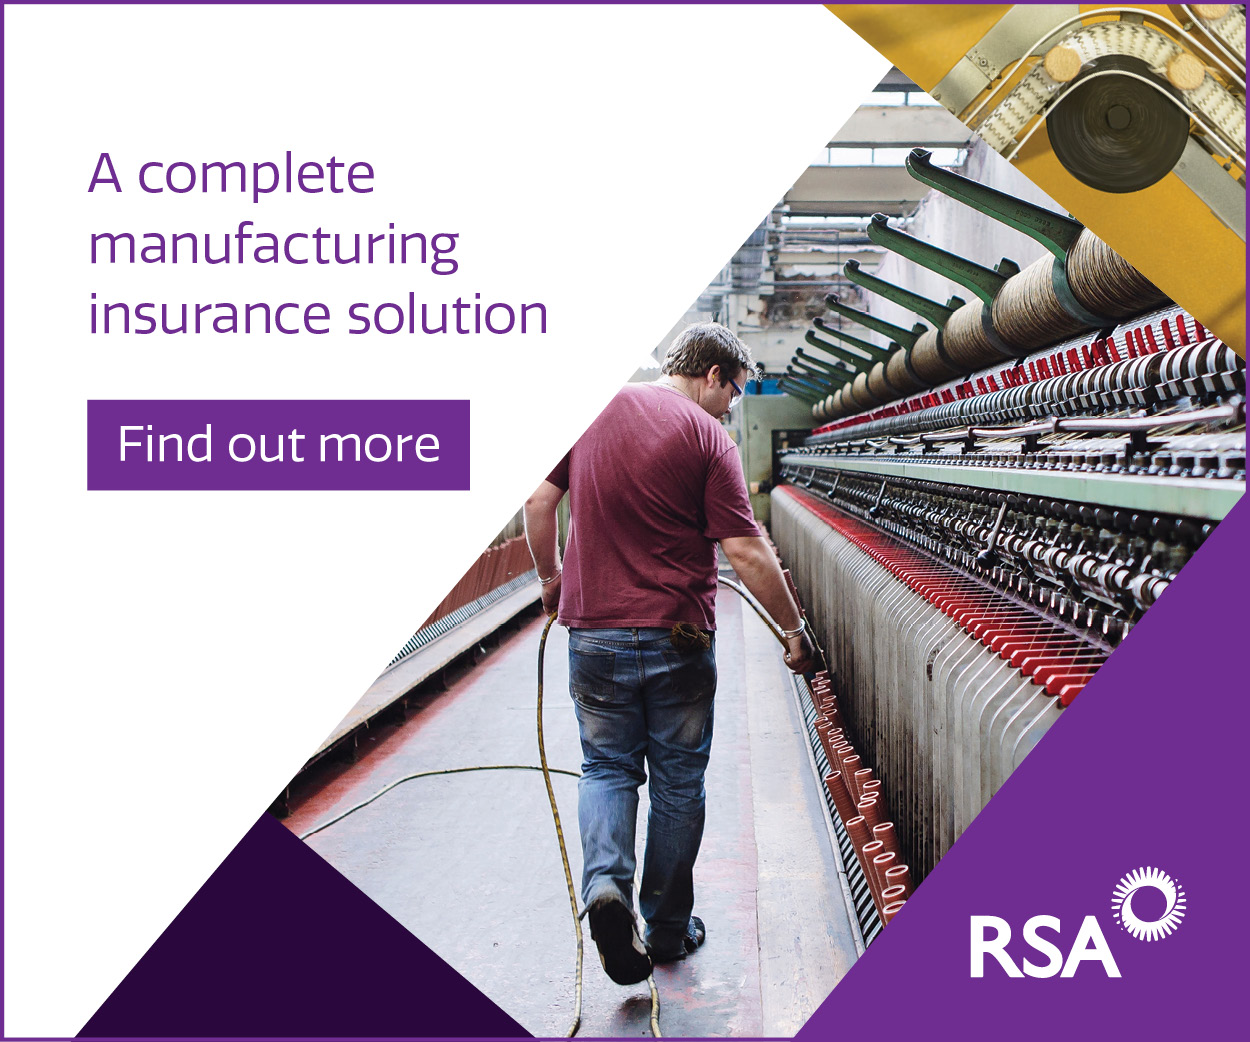 RSA insurance for manufacturing businesses